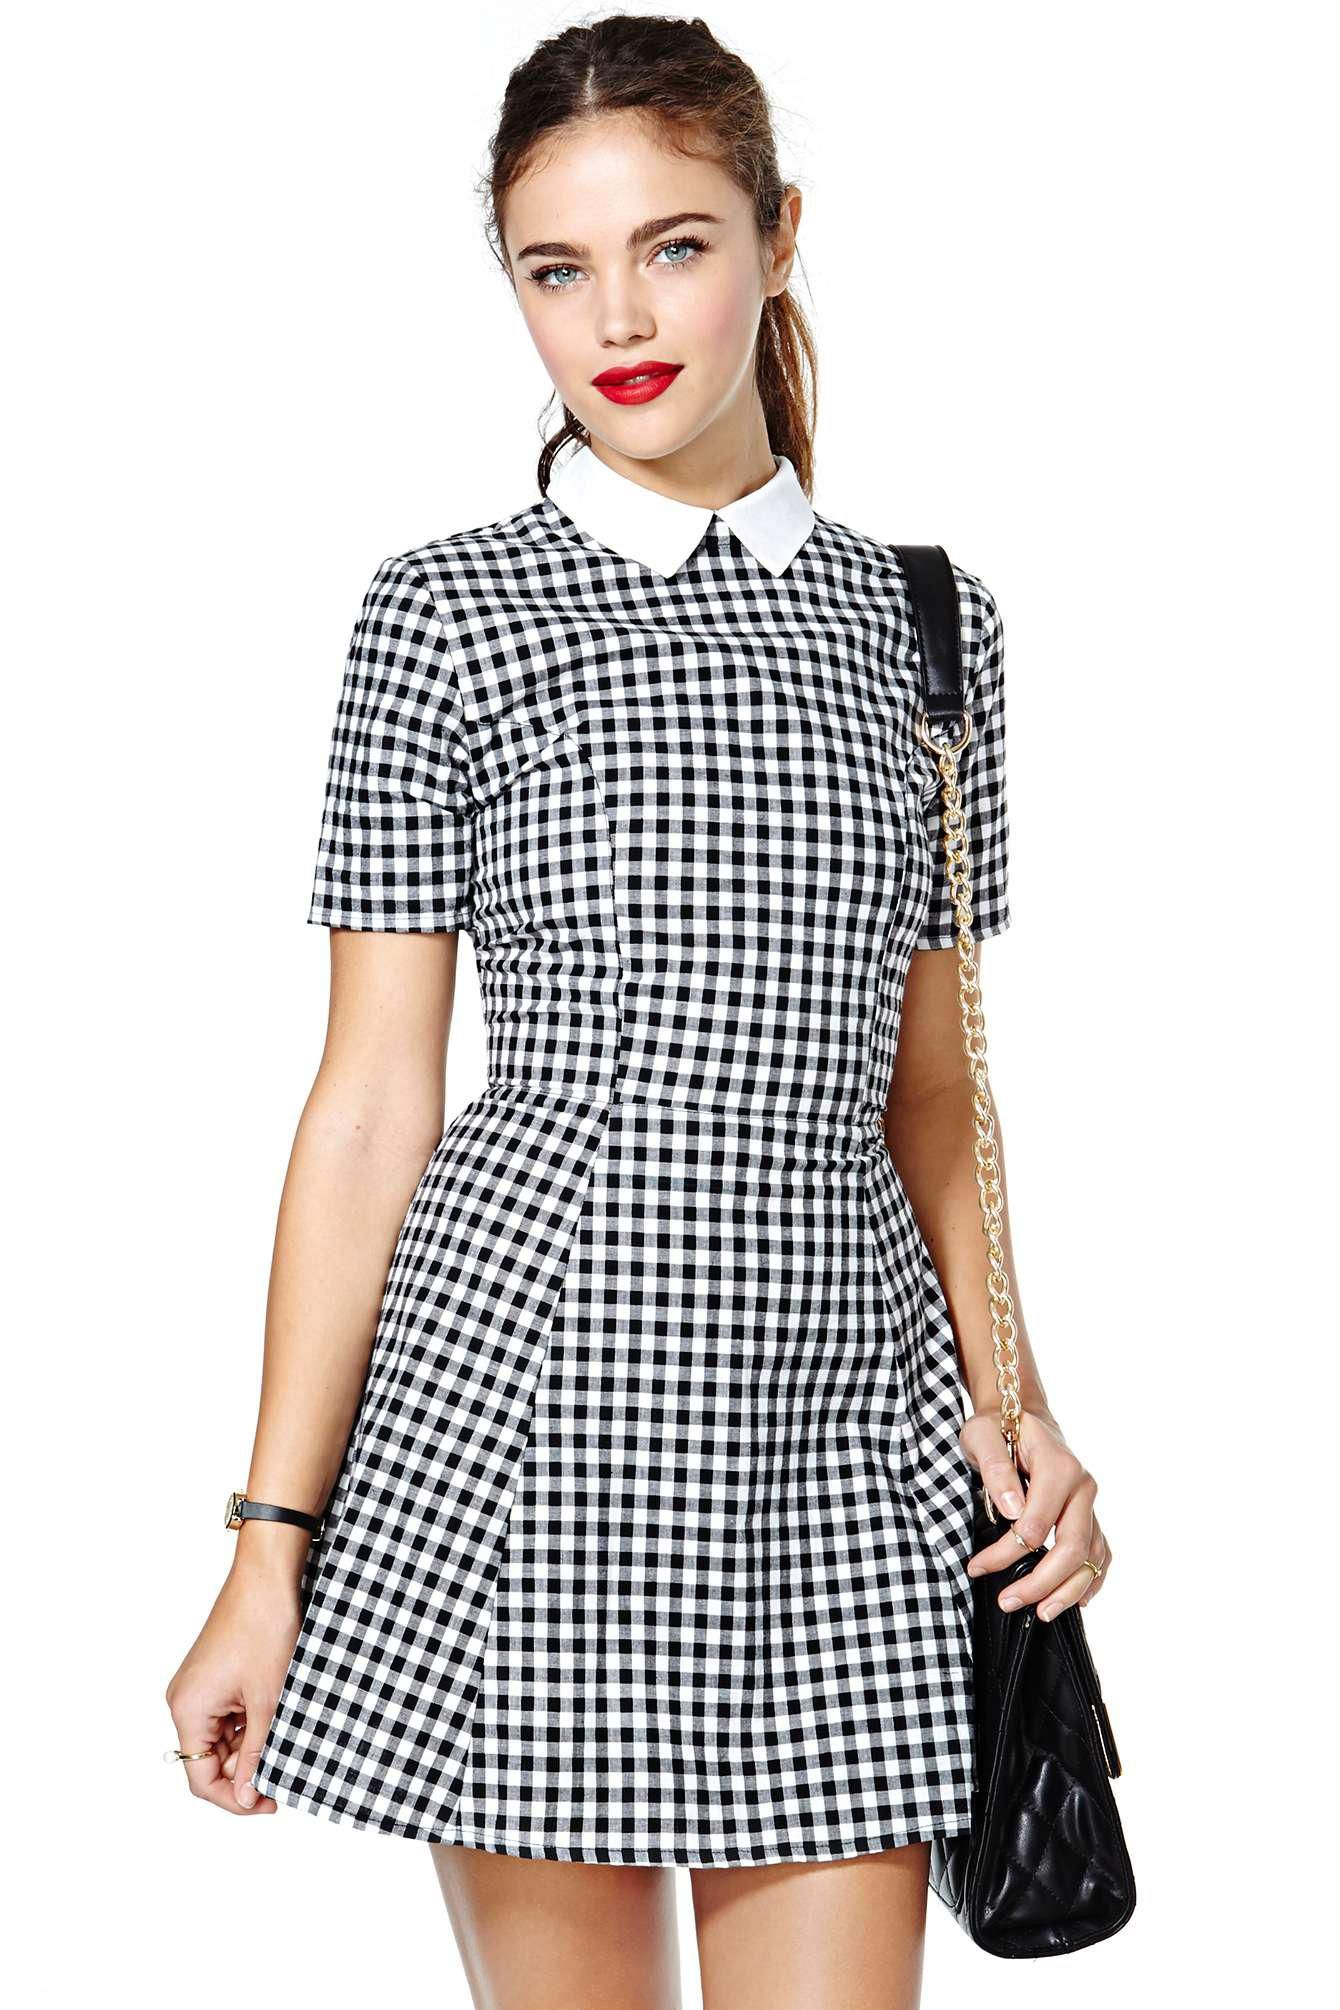 bc3b9a87469 This black and white checkered skater dress will take you through  graduations